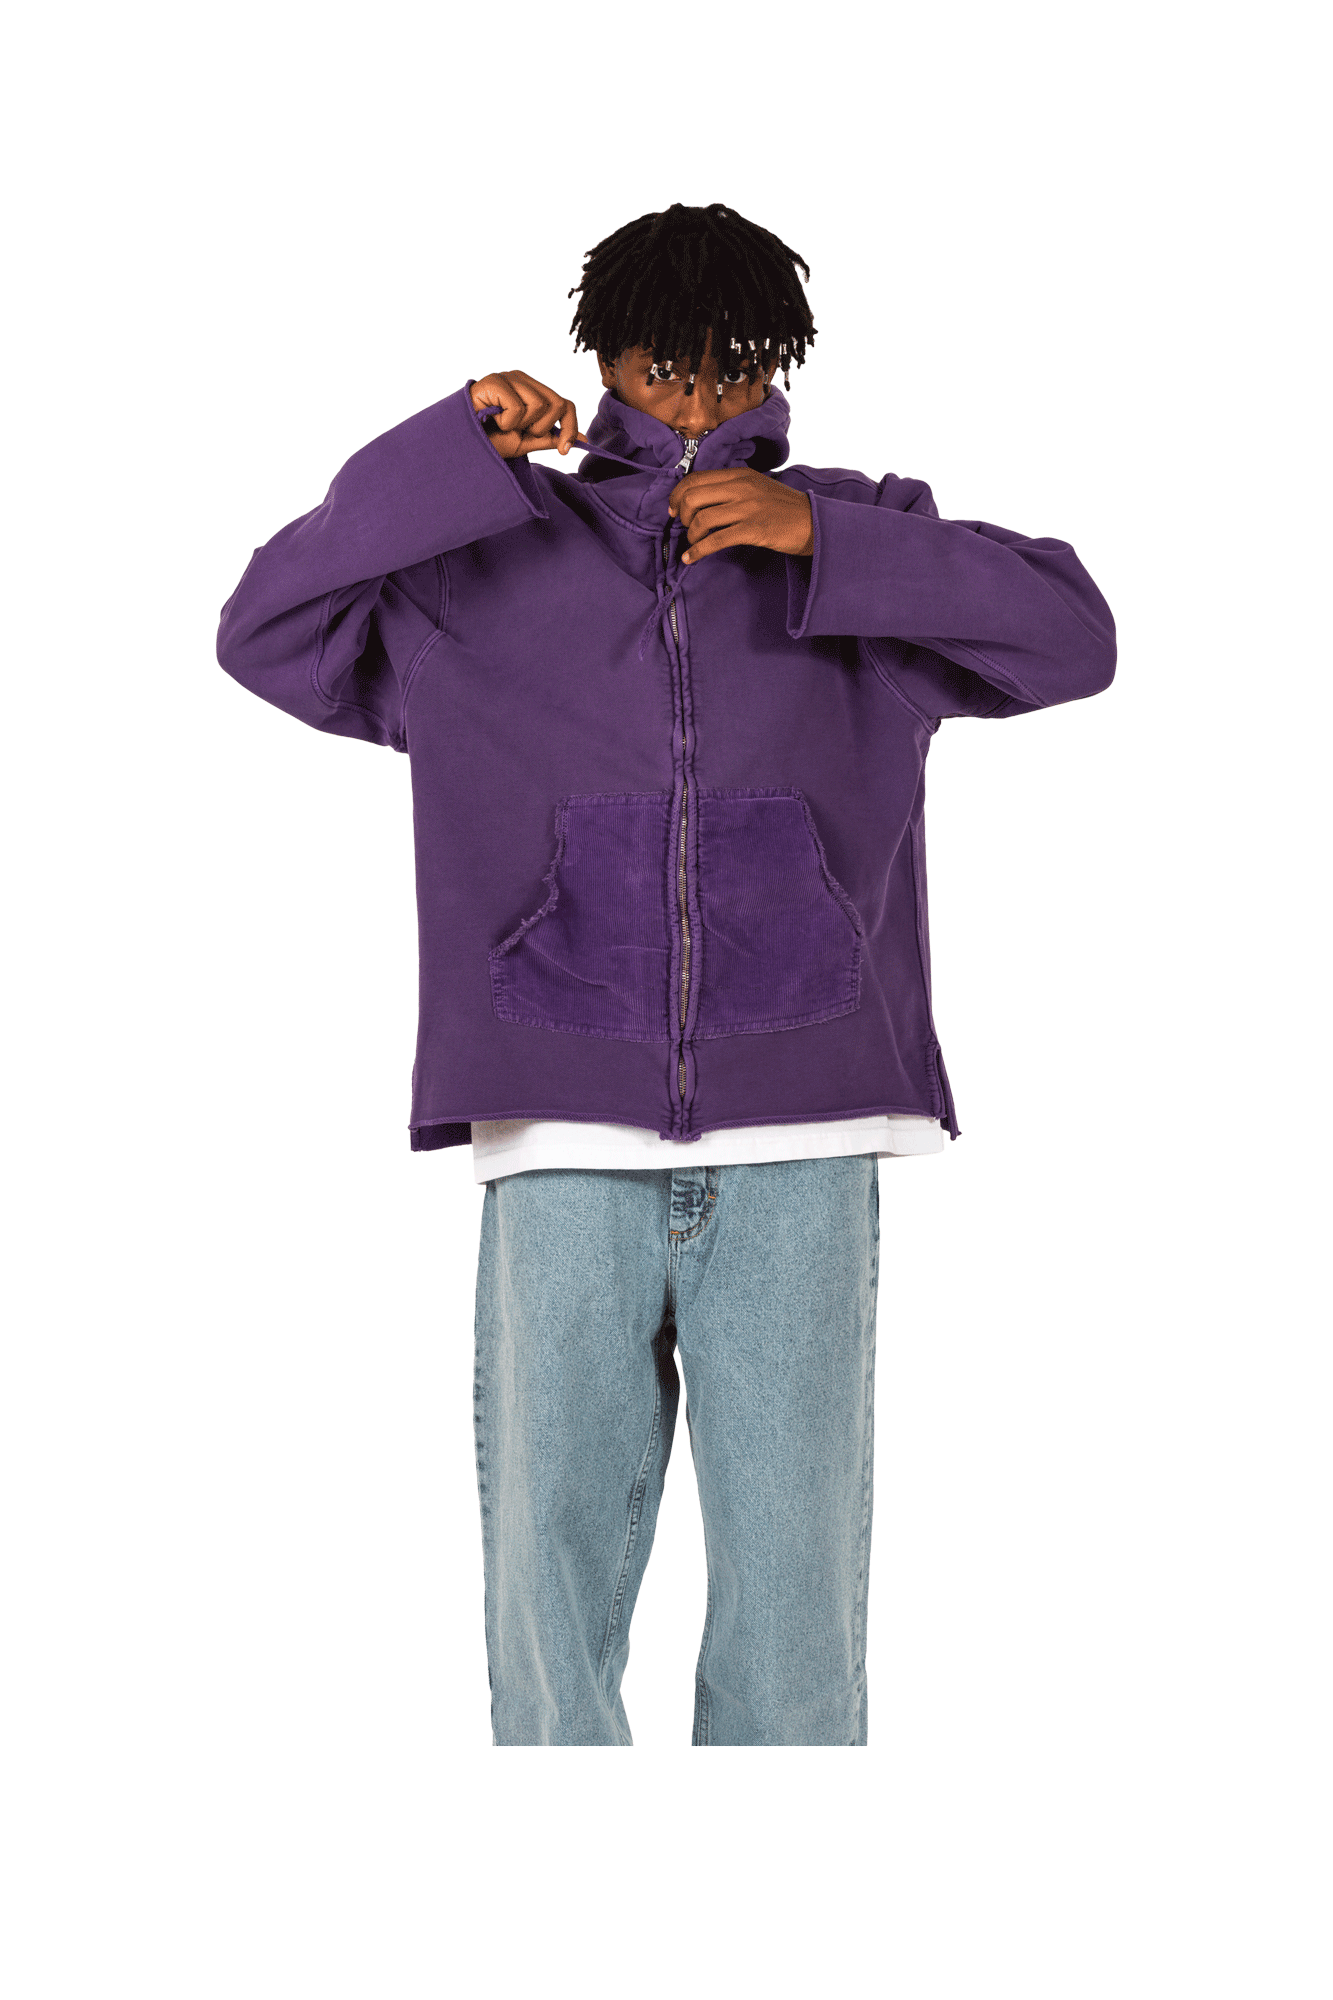 Dr. Collectors Felpe N1 Hood Heavy Fleece Viola SWEATN1#000#PURPLE#S - One Block Down